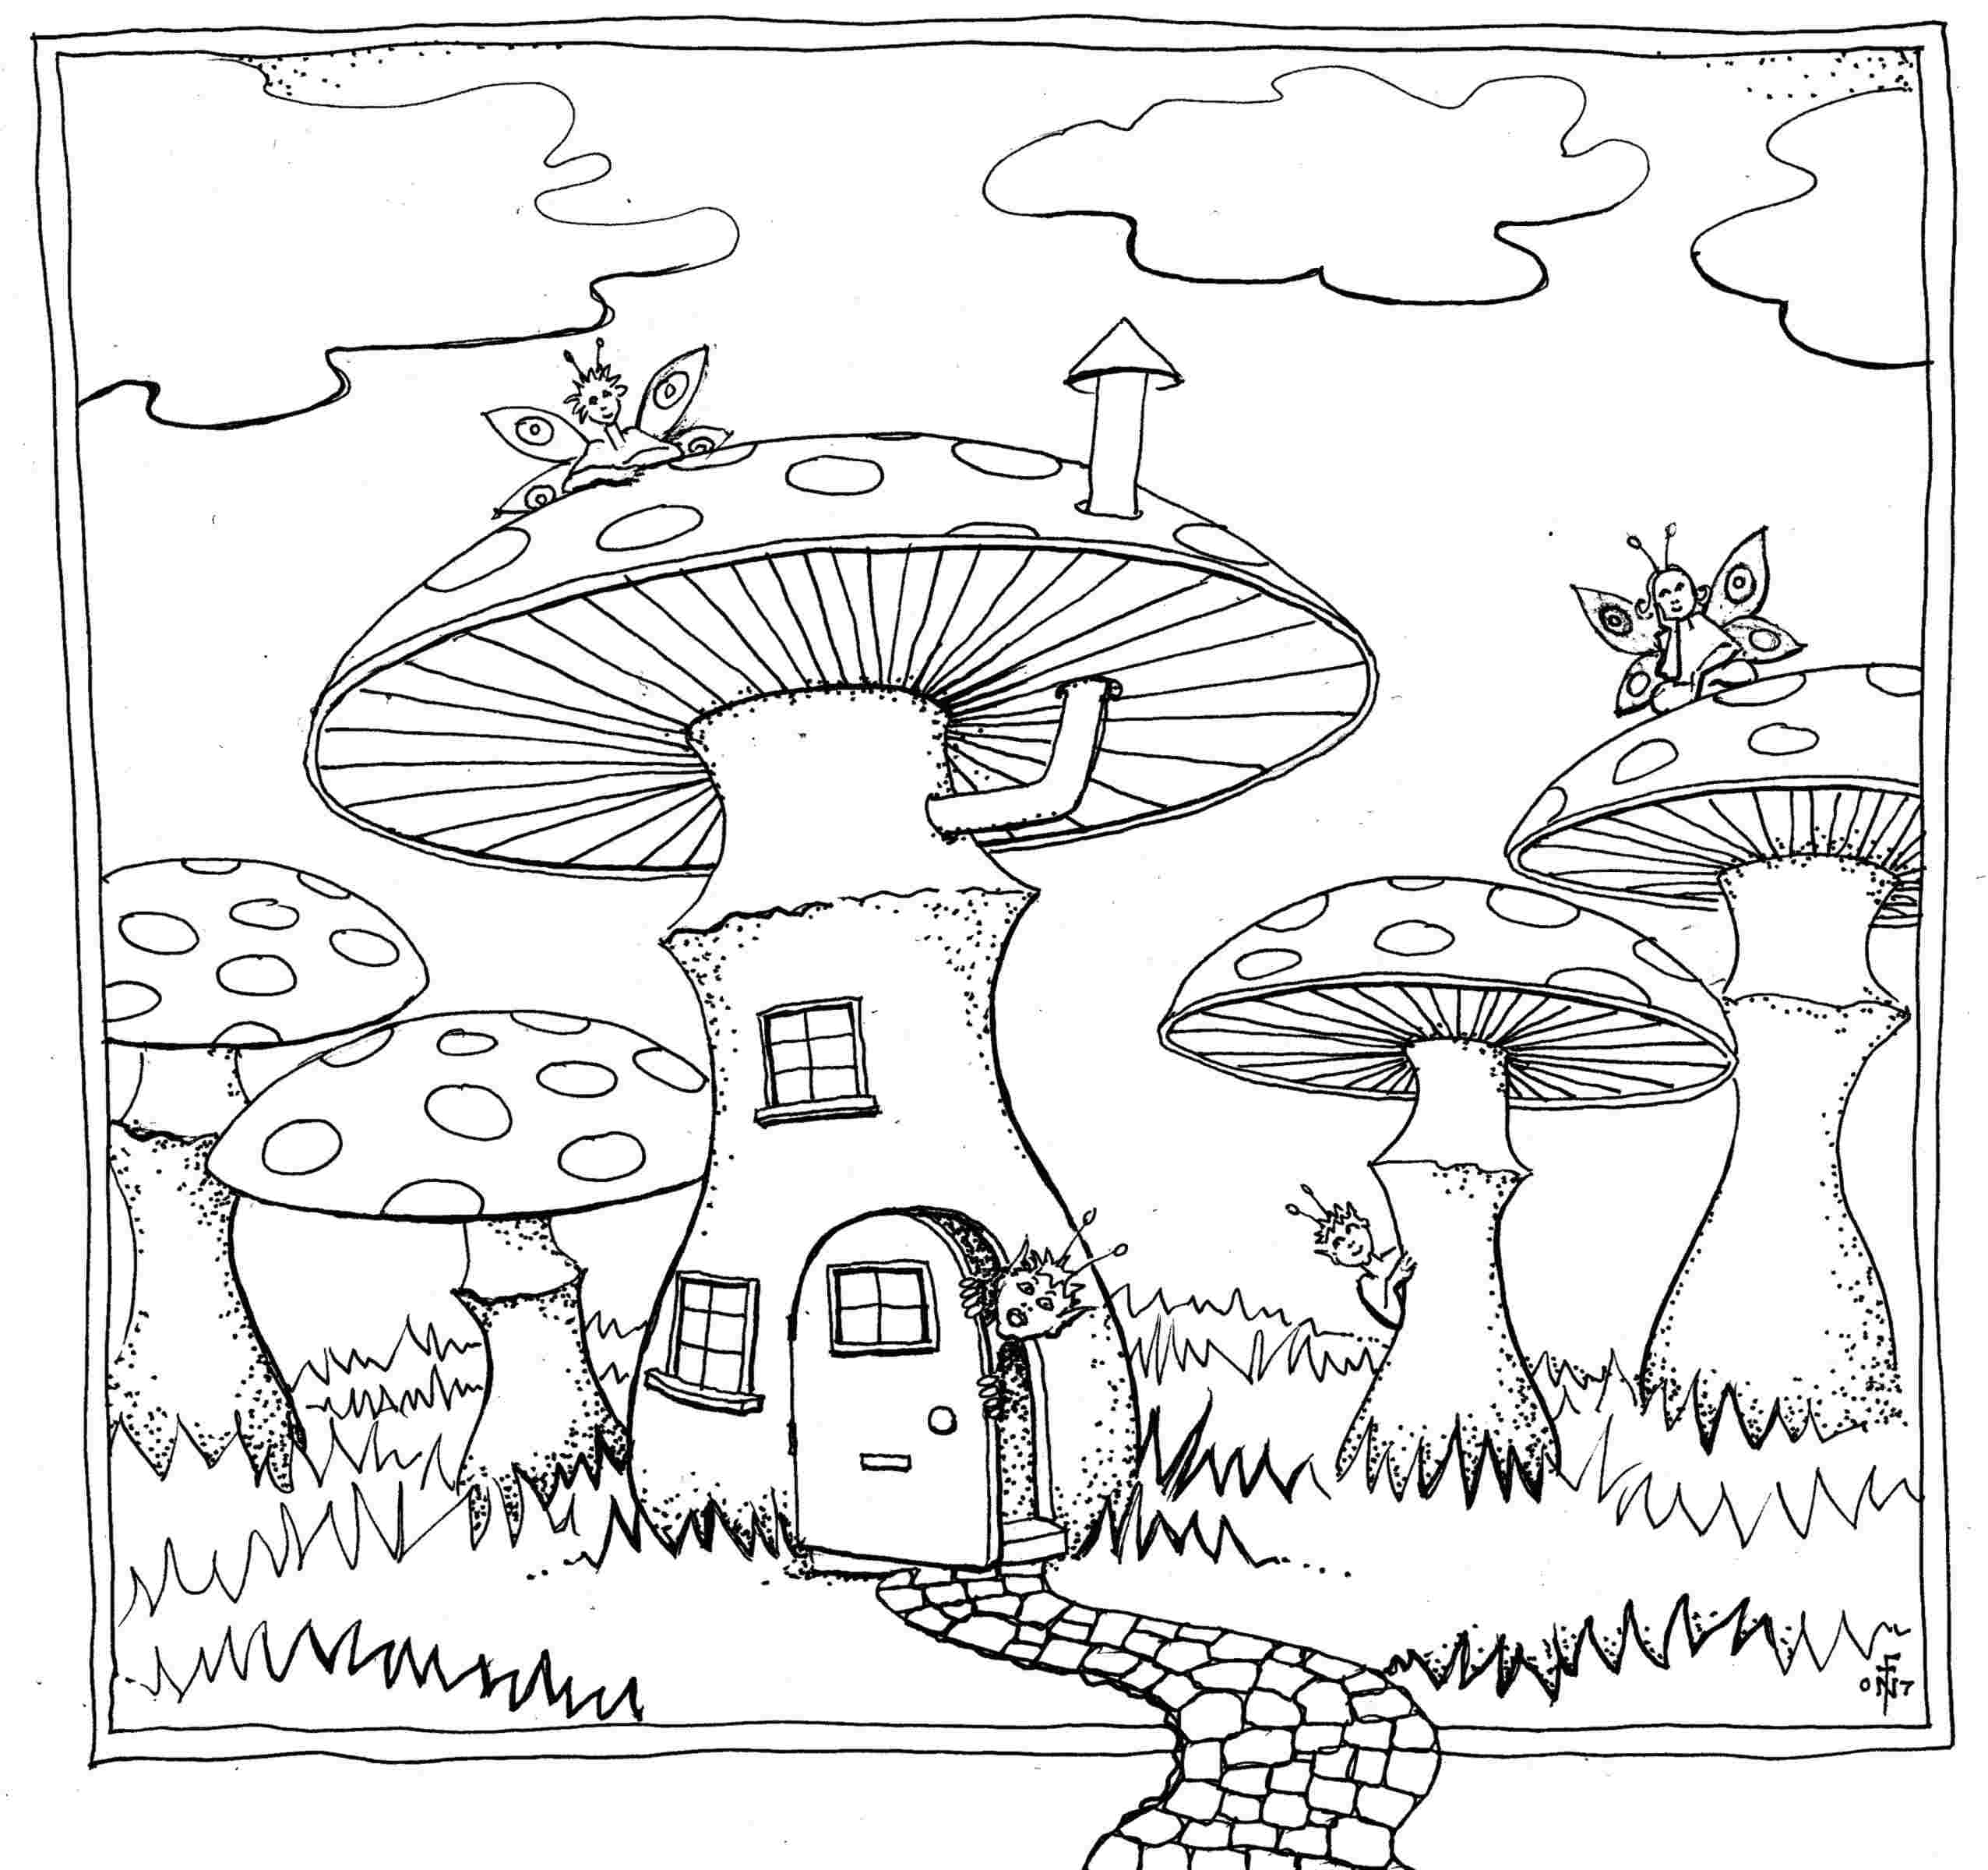 Mushroom Residence - colouring-in drawing - to download, right click and save, print out and colour in!